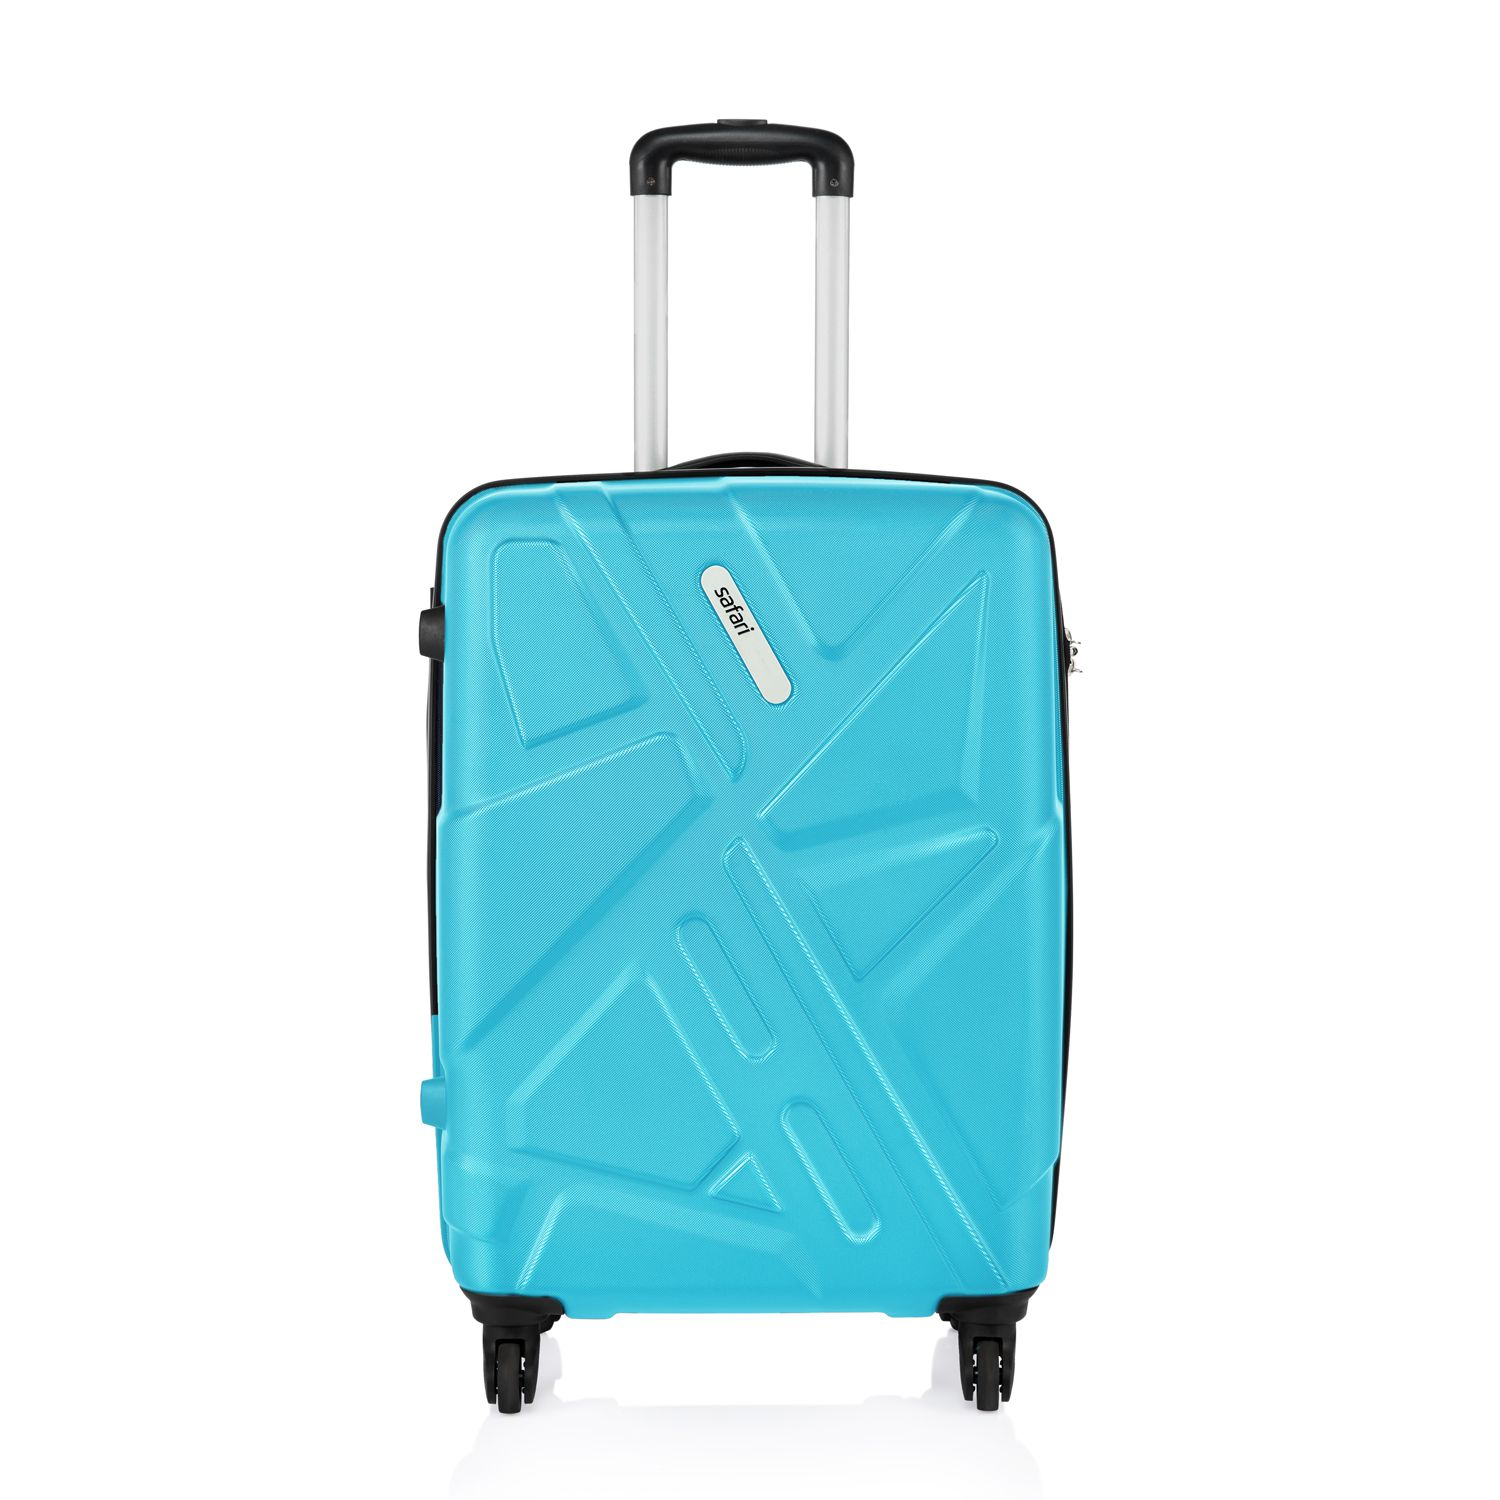 Snapdeal: Safari Traffik-Anti Scratch 4 Wheel Hard Luggage @ Rs.2,695/- (65% OFF)